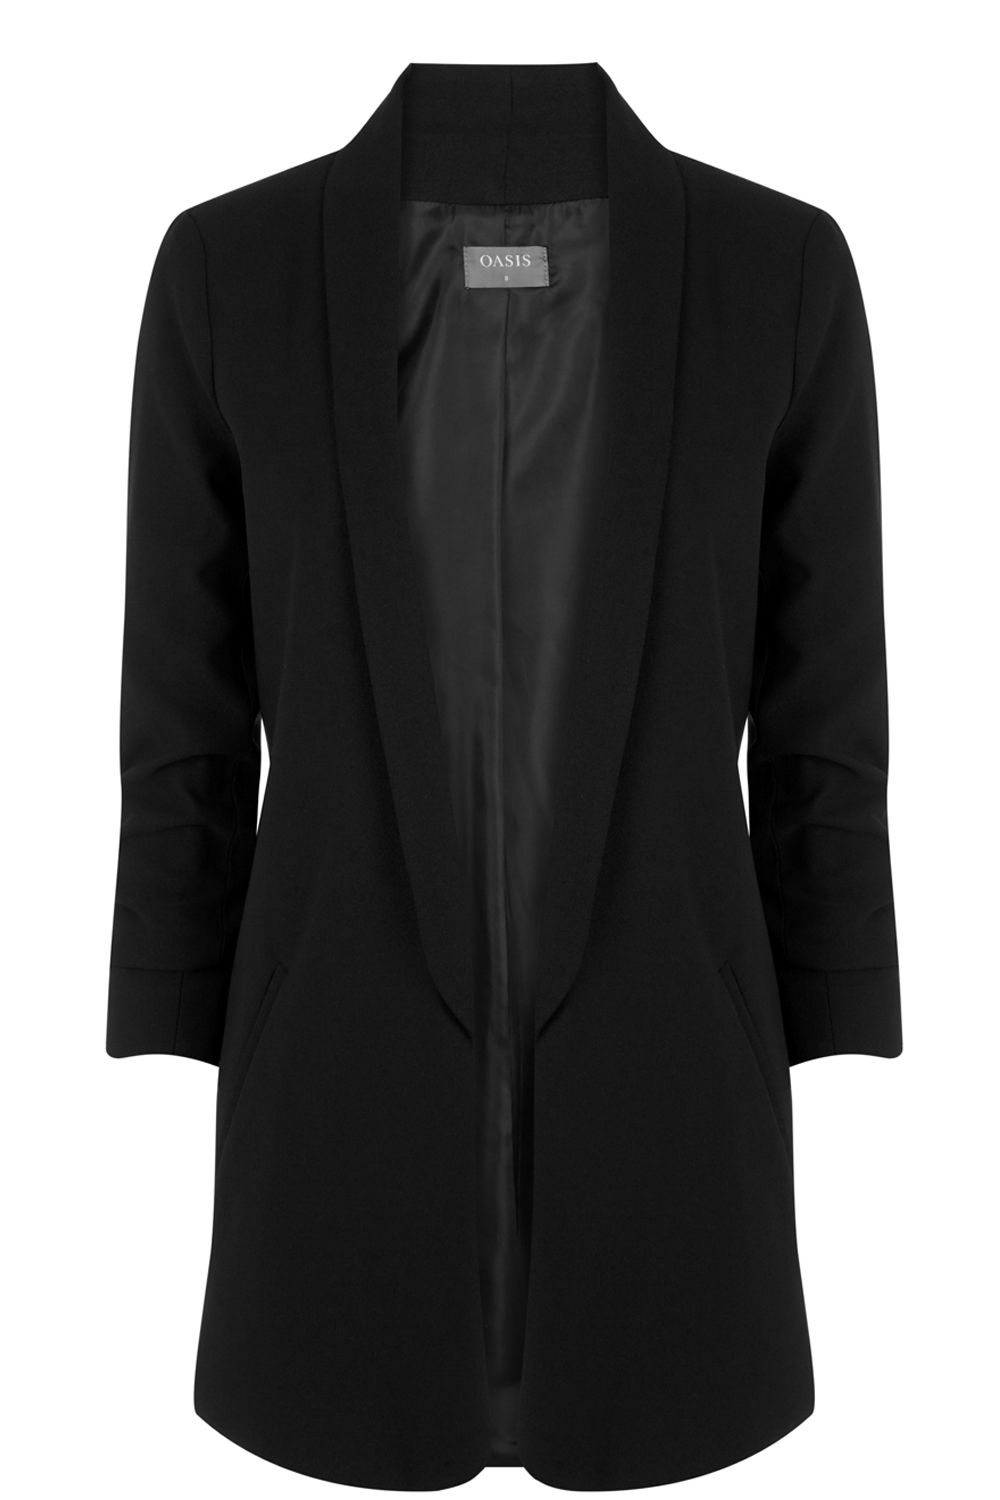 Oasis Ruched Sleeve Soft Blazer, Black